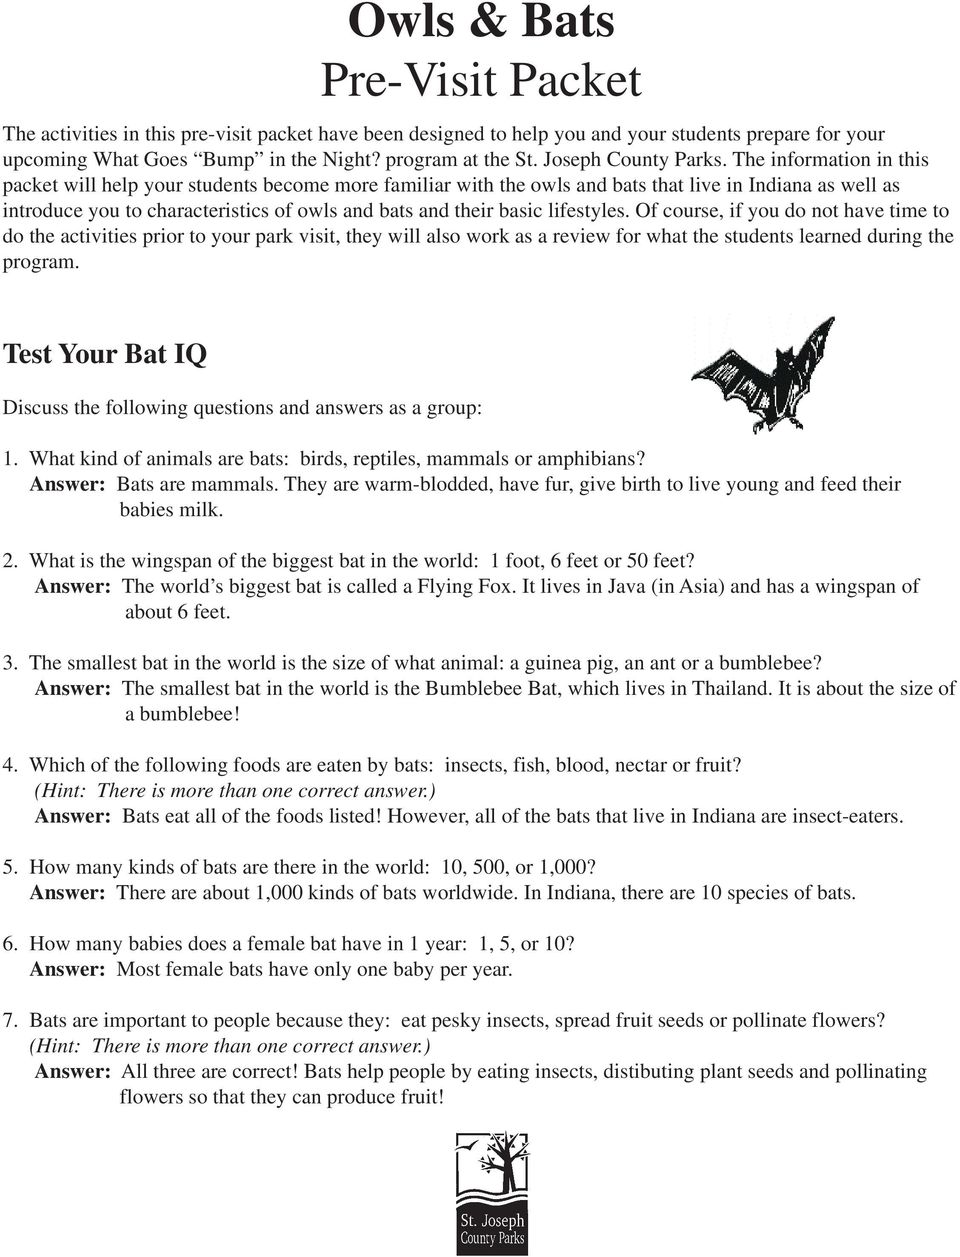 The information in this packet will help your students become more familiar with the owls and bats that live in Indiana as well as introduce you to characteristics of owls and bats and their basic